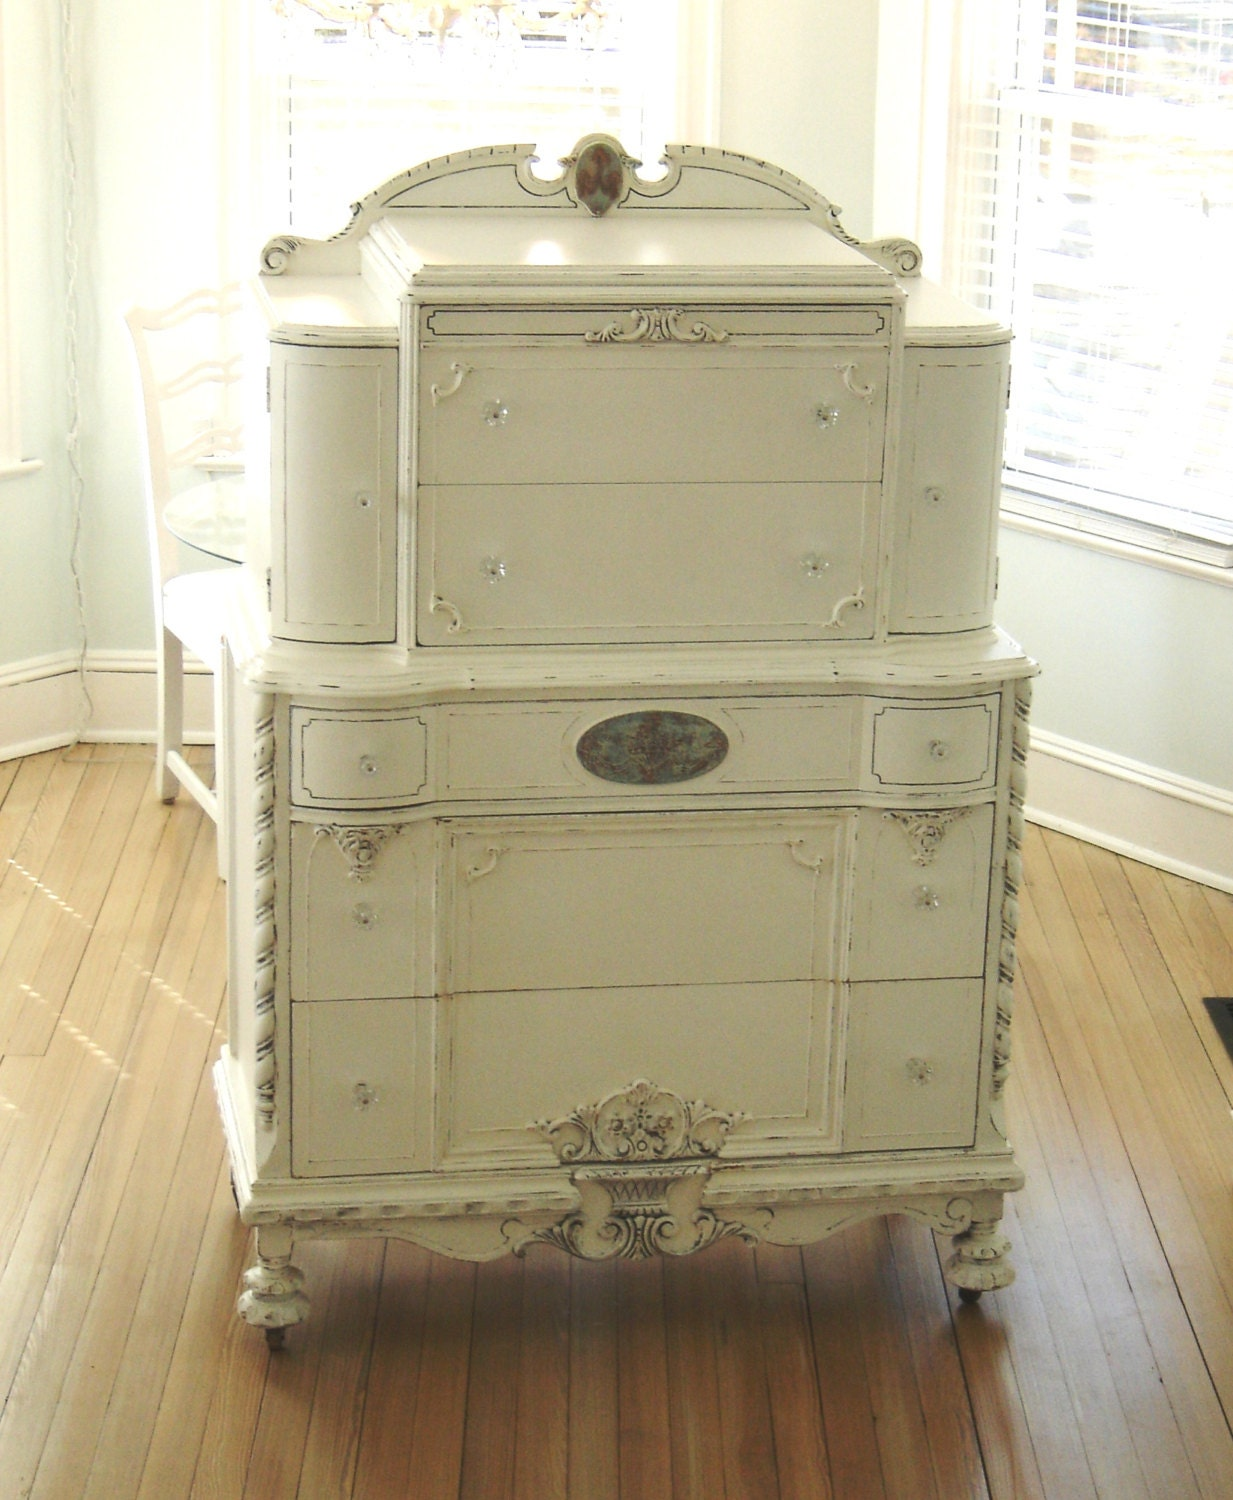 Shabby Chic Furniture: Antique Ornate Dresser White Shabby Chic Furniture